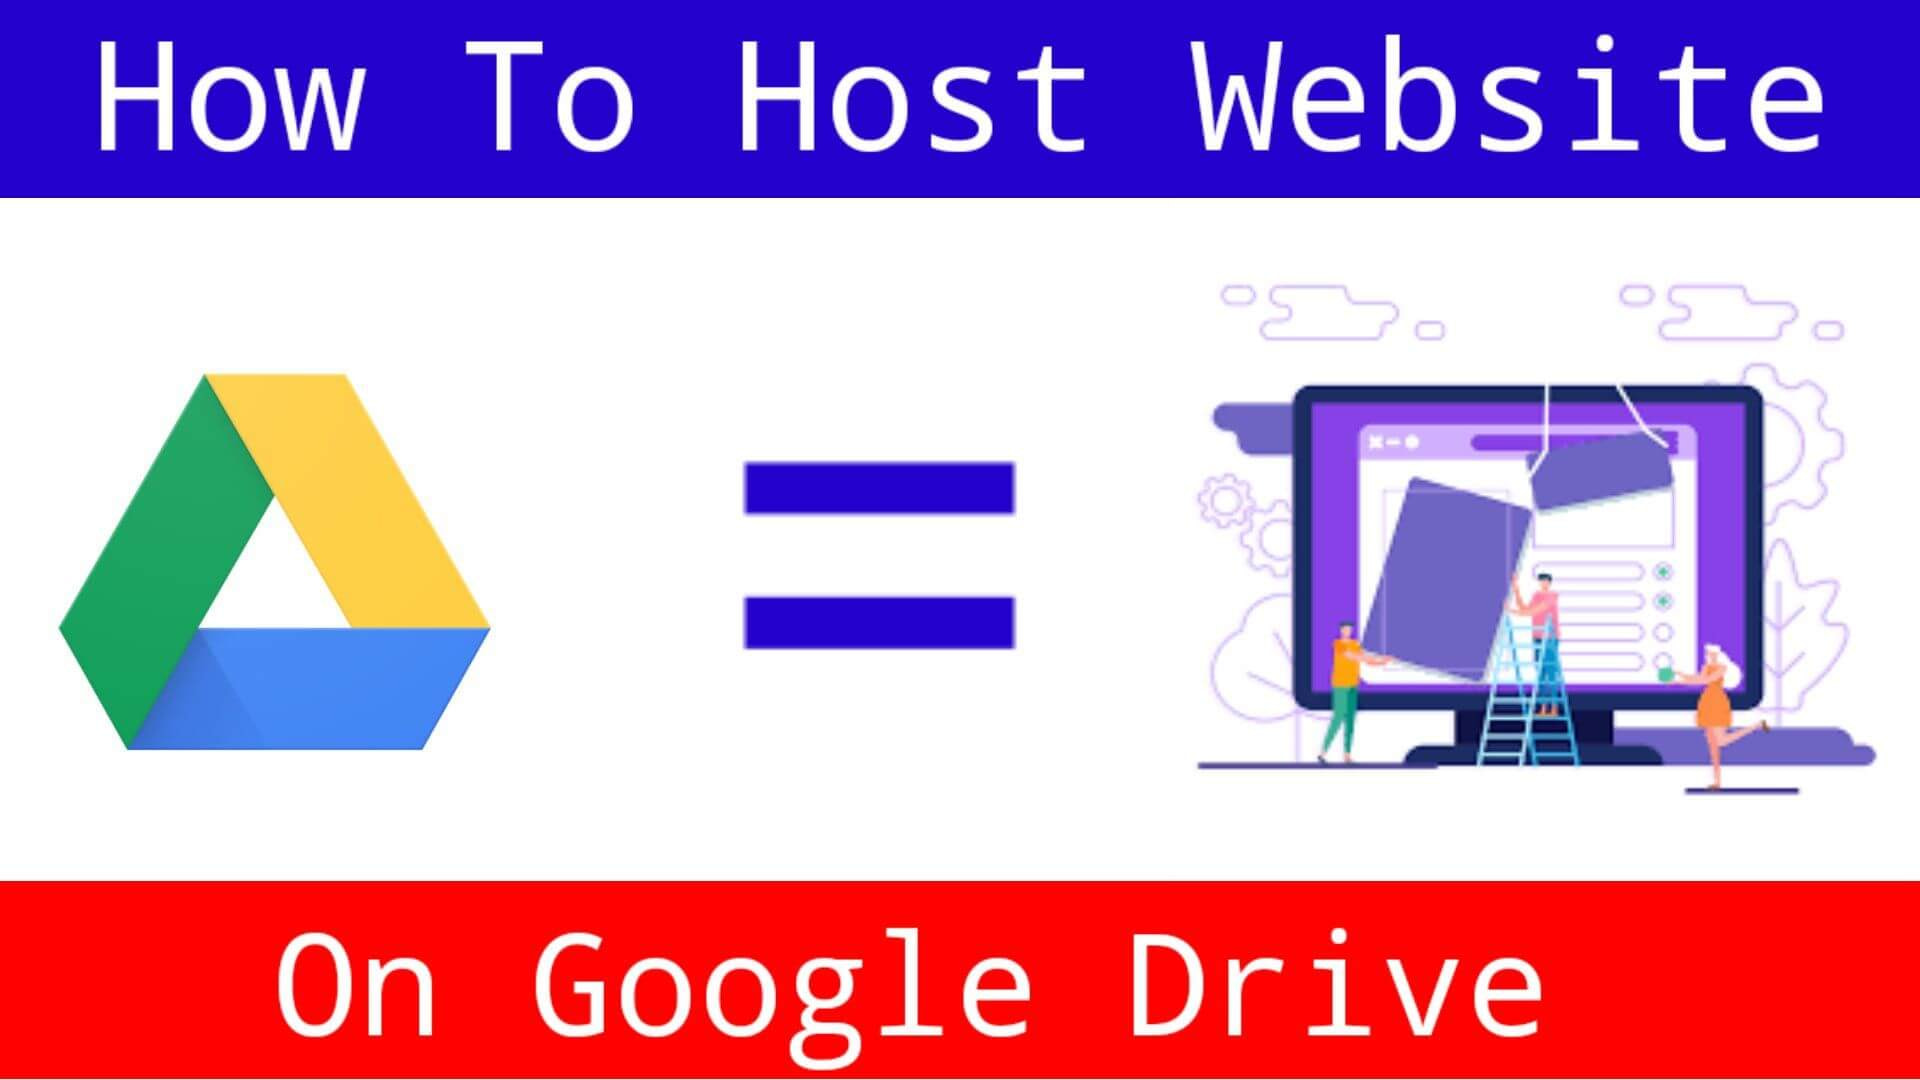 Host Website On Google Drive